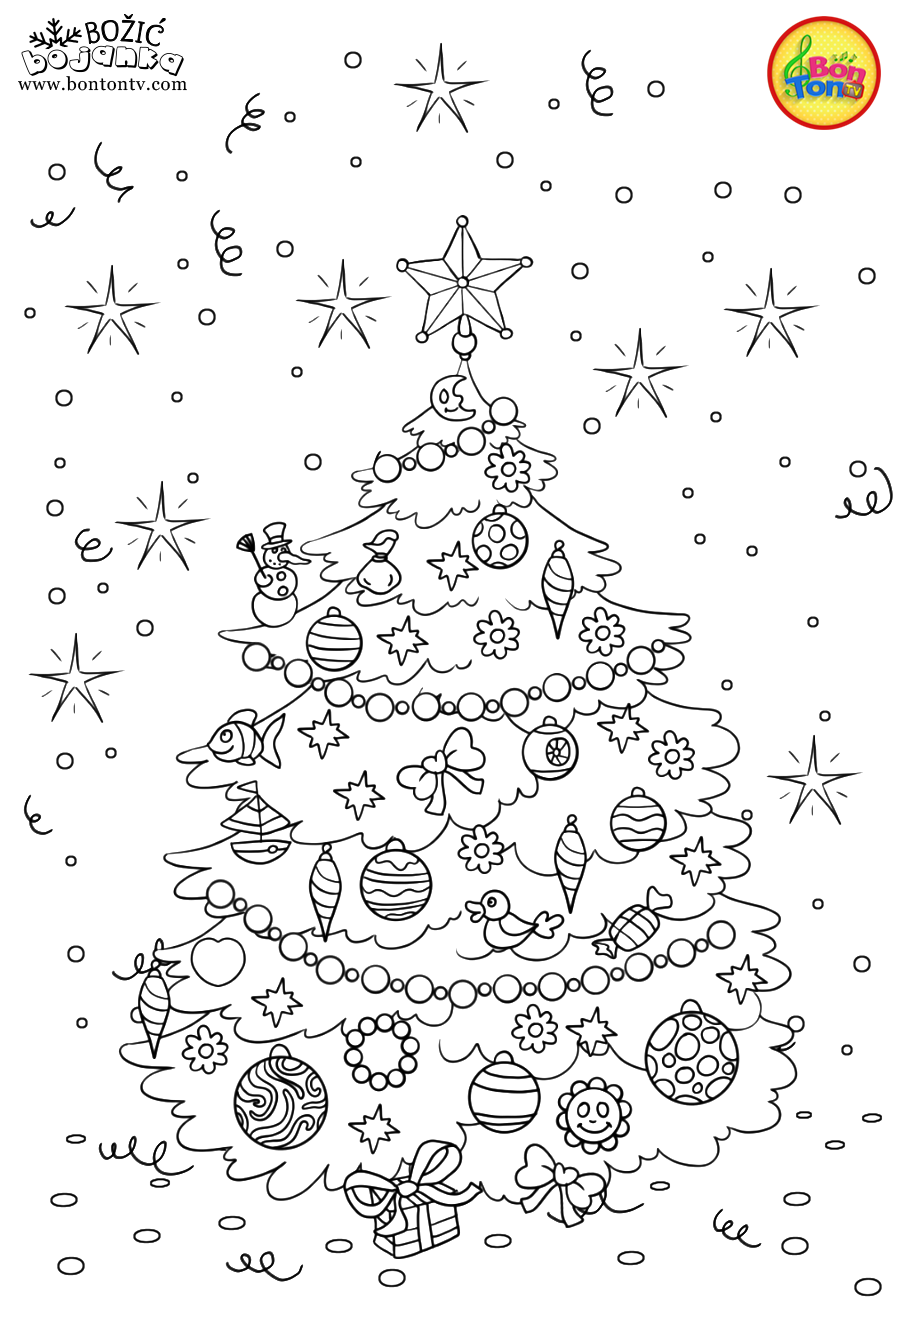 Christmas Coloring Pages - Božić bojanke za djecu - Free Printables for Kids - Christmas Tree, Cookies, Santa Claus and Snowman, Reindeers and more on BonTon TV - Coloring Books #christmas #coloringpages #coloringbooks #printables #božić #bontontv #adultcoloringpages